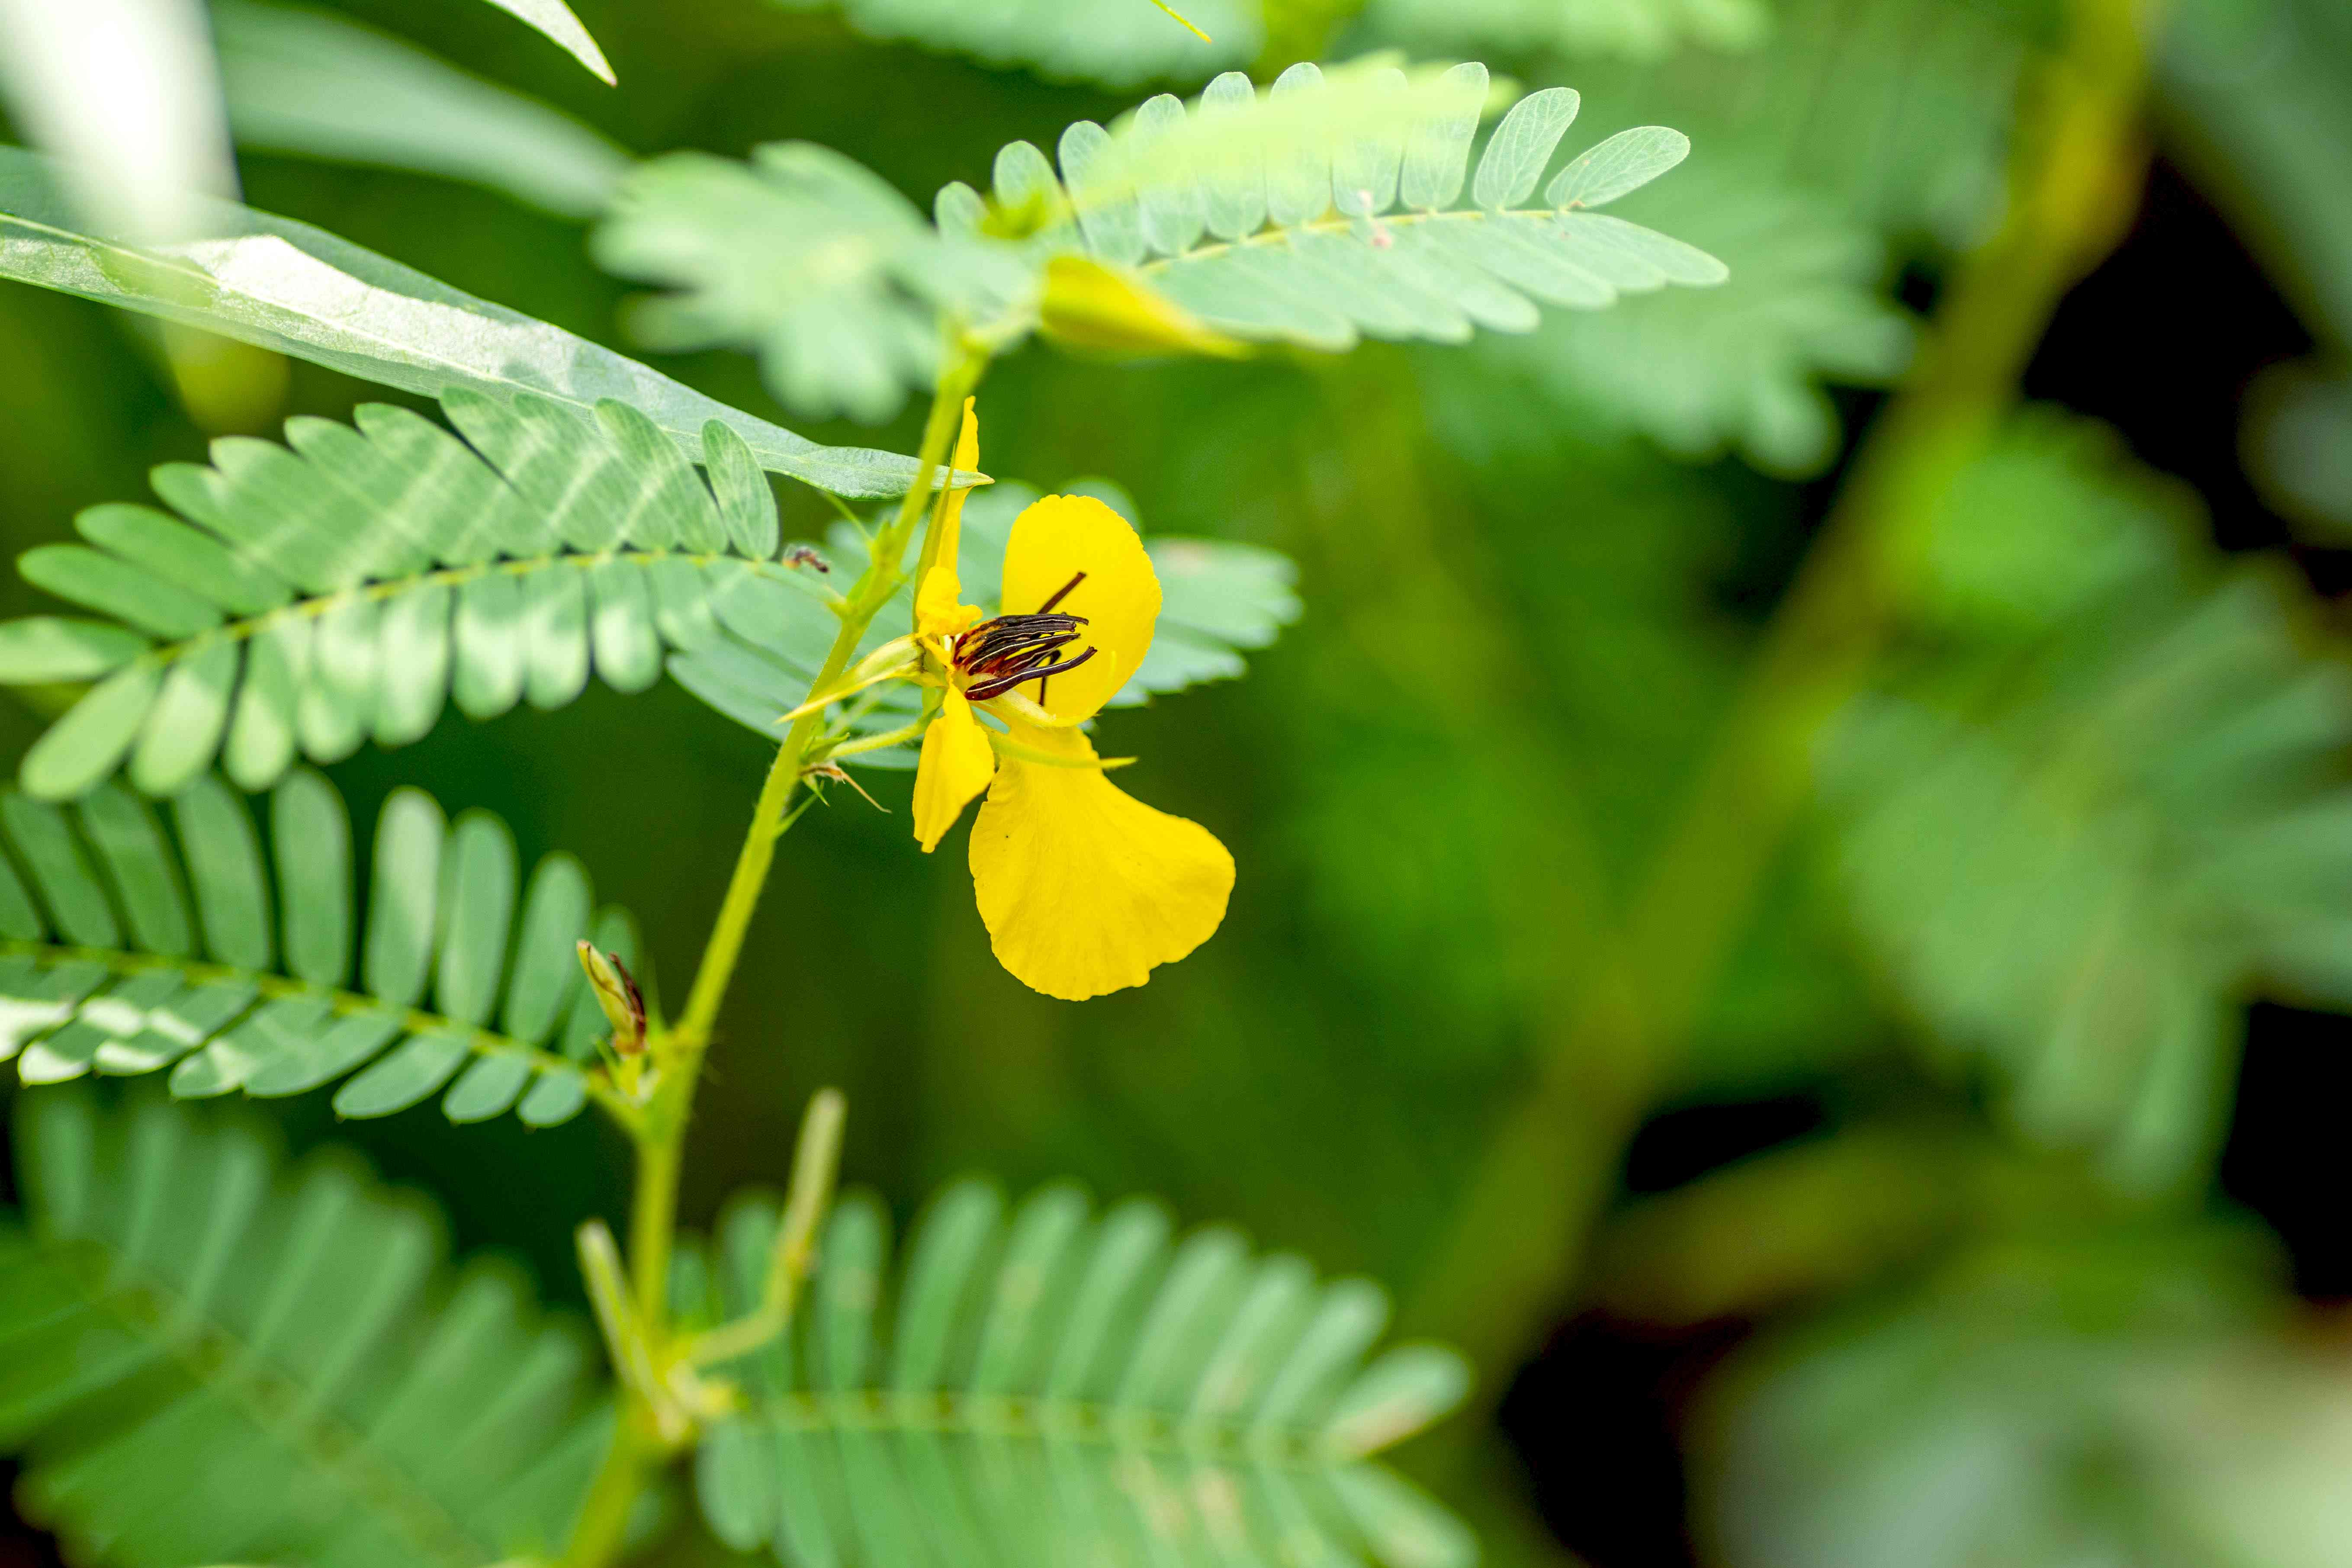 Partridge pea plant with yellow flower surrounded by feathery leaves closeup